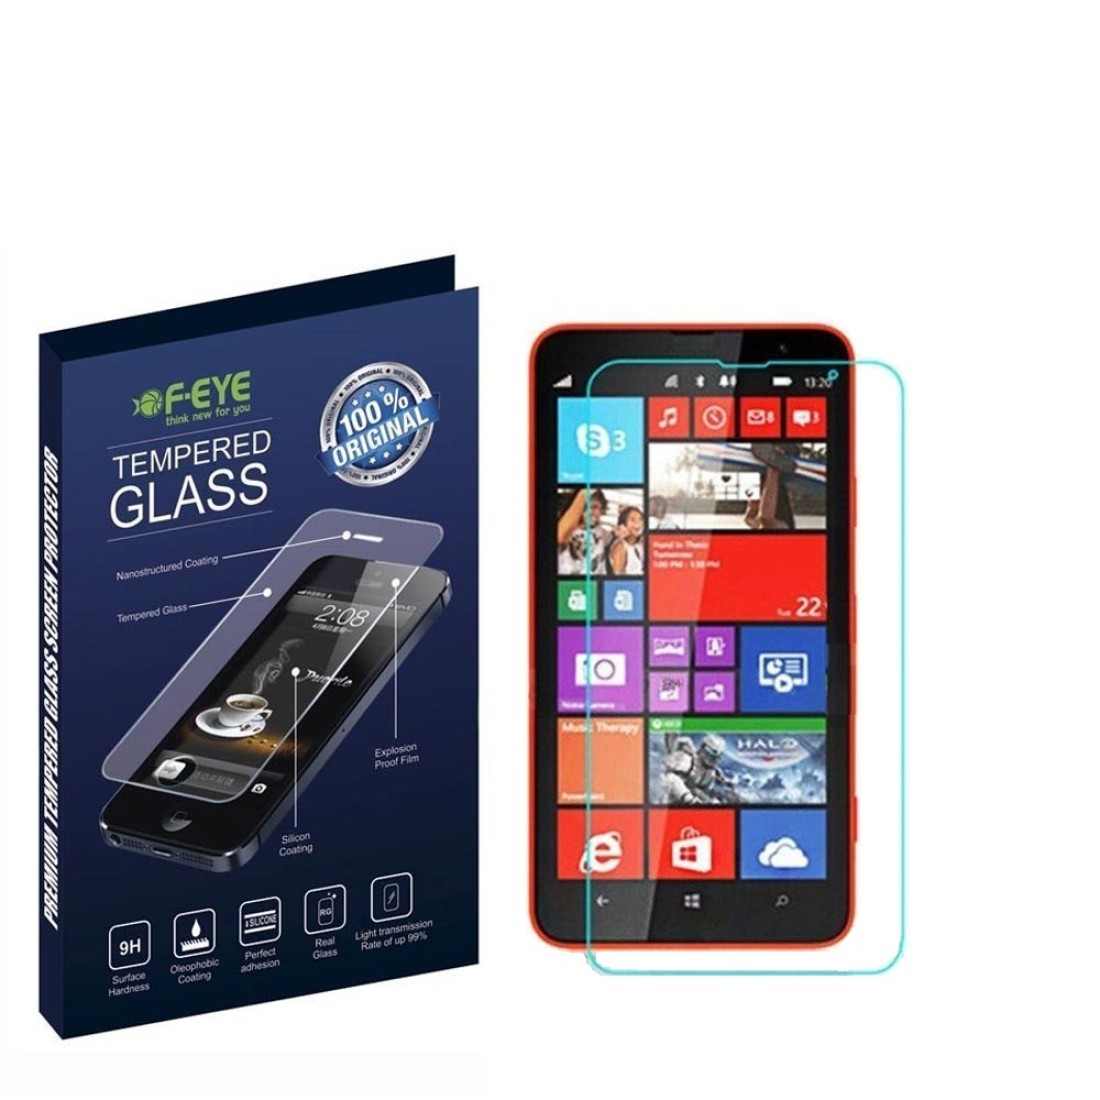 FEYE FMT-126a HD Ultra Clear Original Tempered Glass for Nokia Lumia 1320